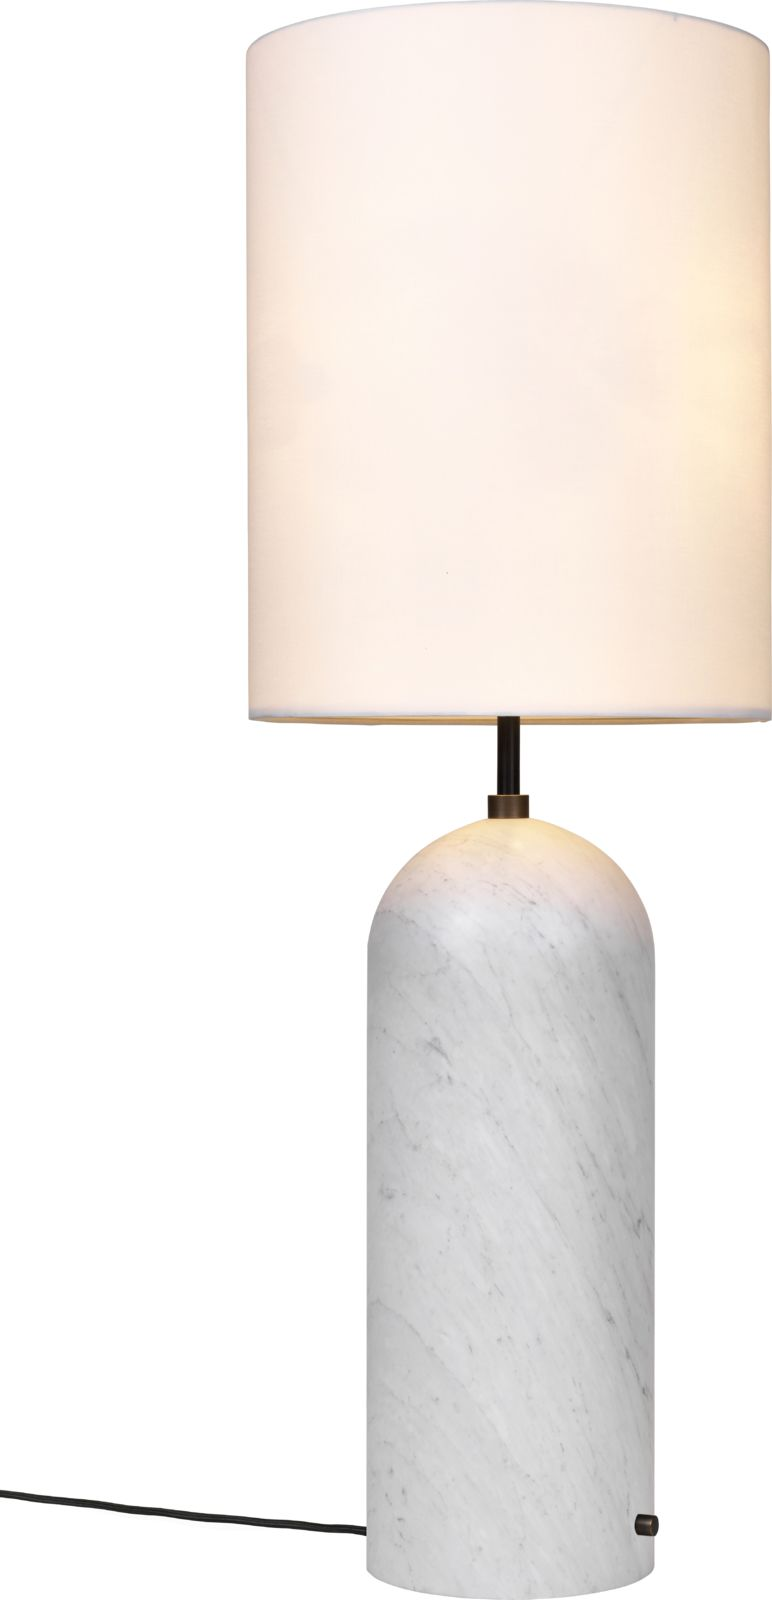 Gubi Gravity XL Floorlamp Hvit Marmor base White/White